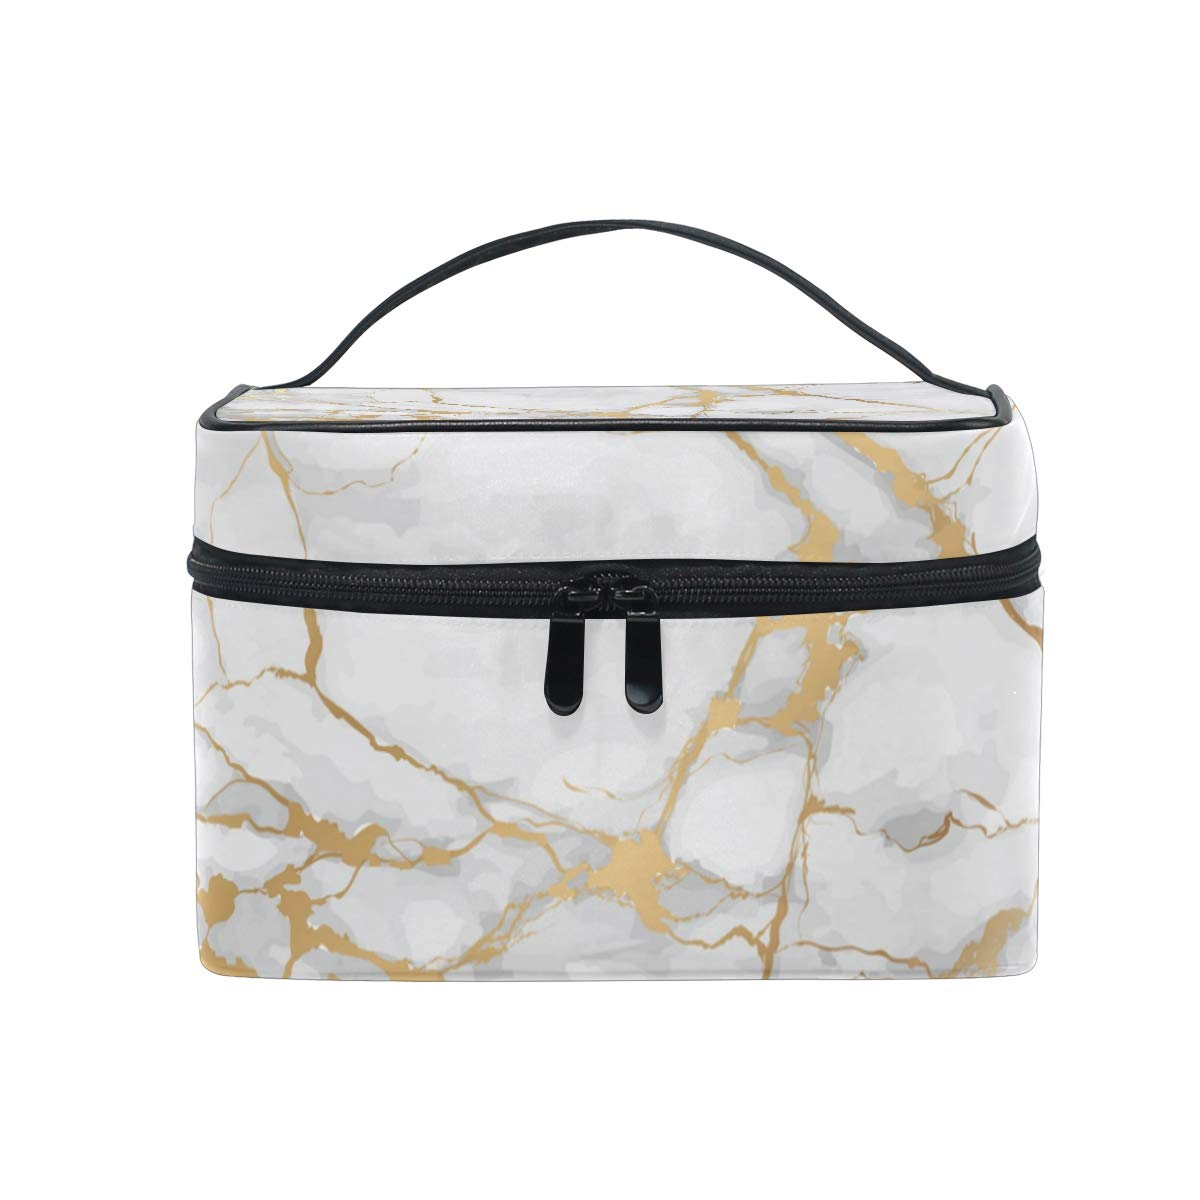 Makeup Bag Square Cosmetic Marble Stripe Train Case Portable Travel Toiletry Bag Organizer Accessories Case Tools Case for Beauty Women